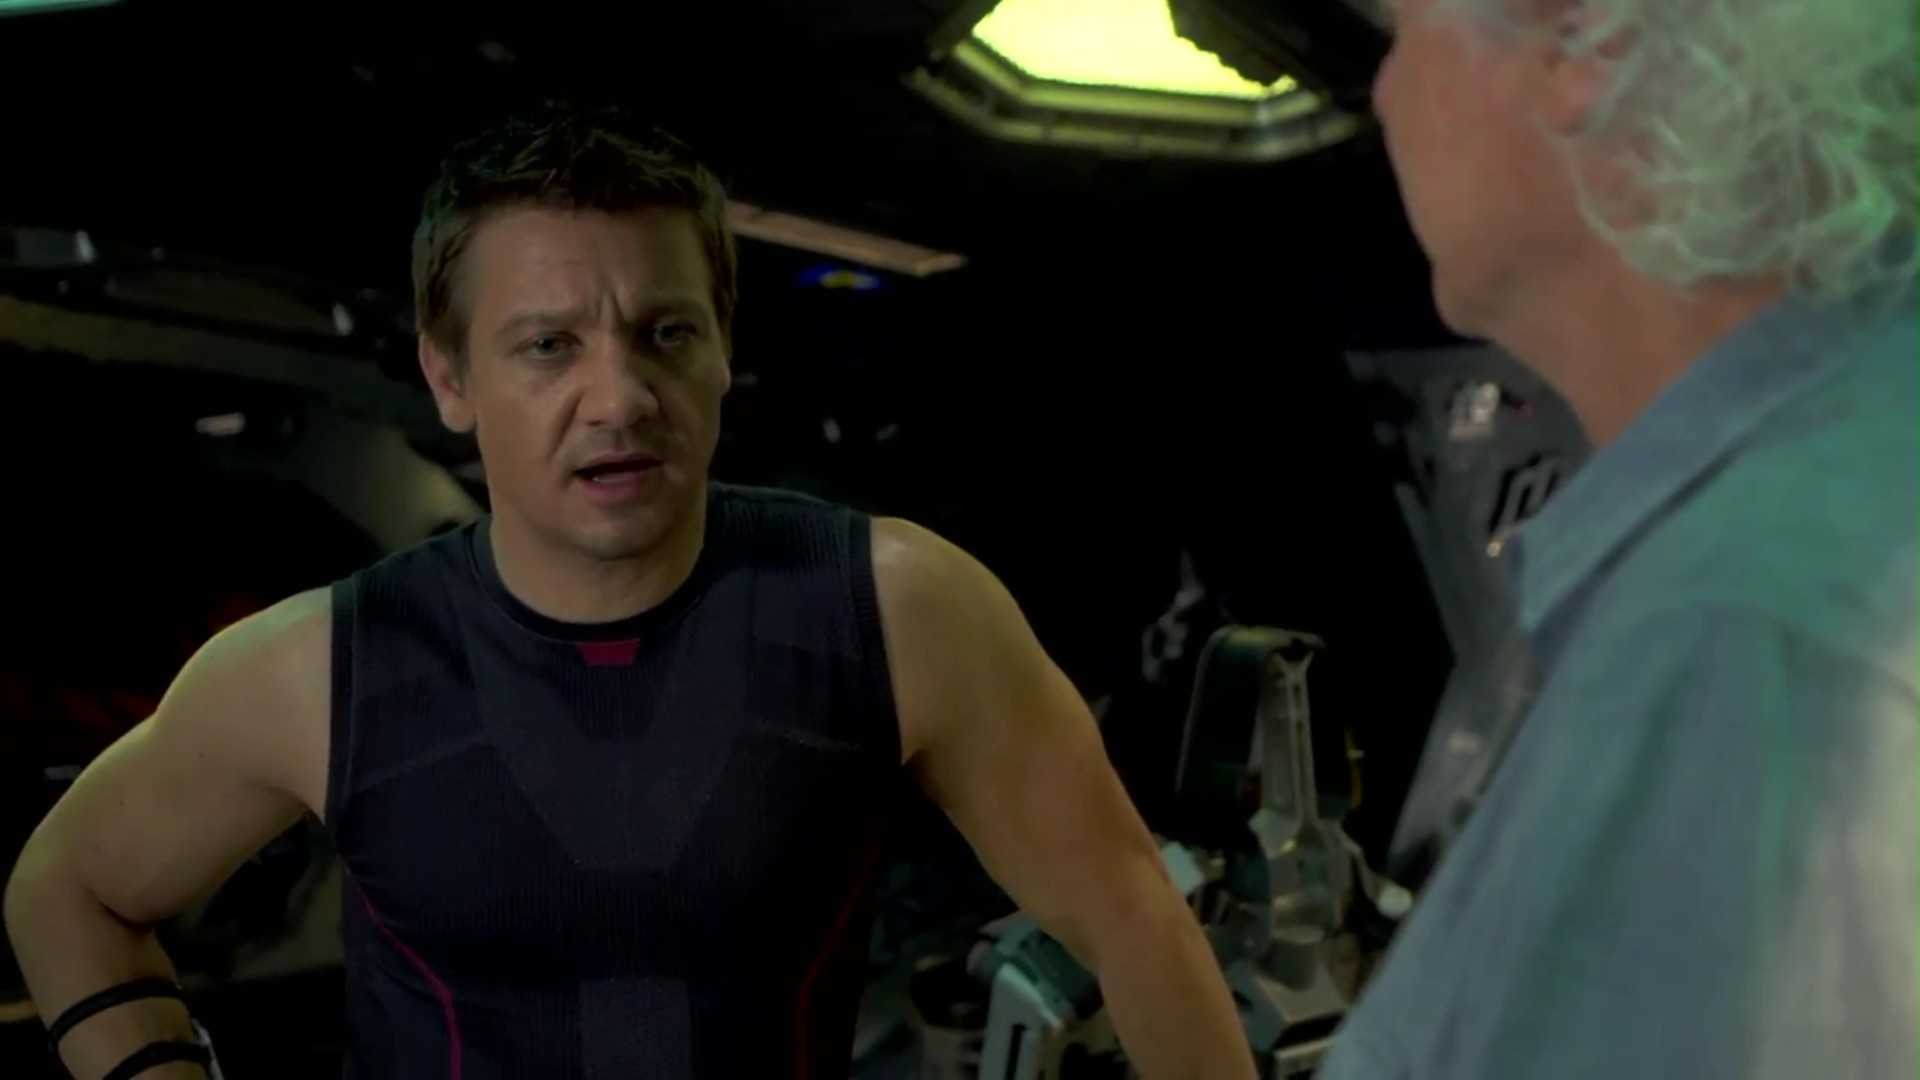 Exclusive_-_Behind_the_Scenes_of_Avengers_Age_of_Ultron_Part_2_of_3[11-17-17].jpg